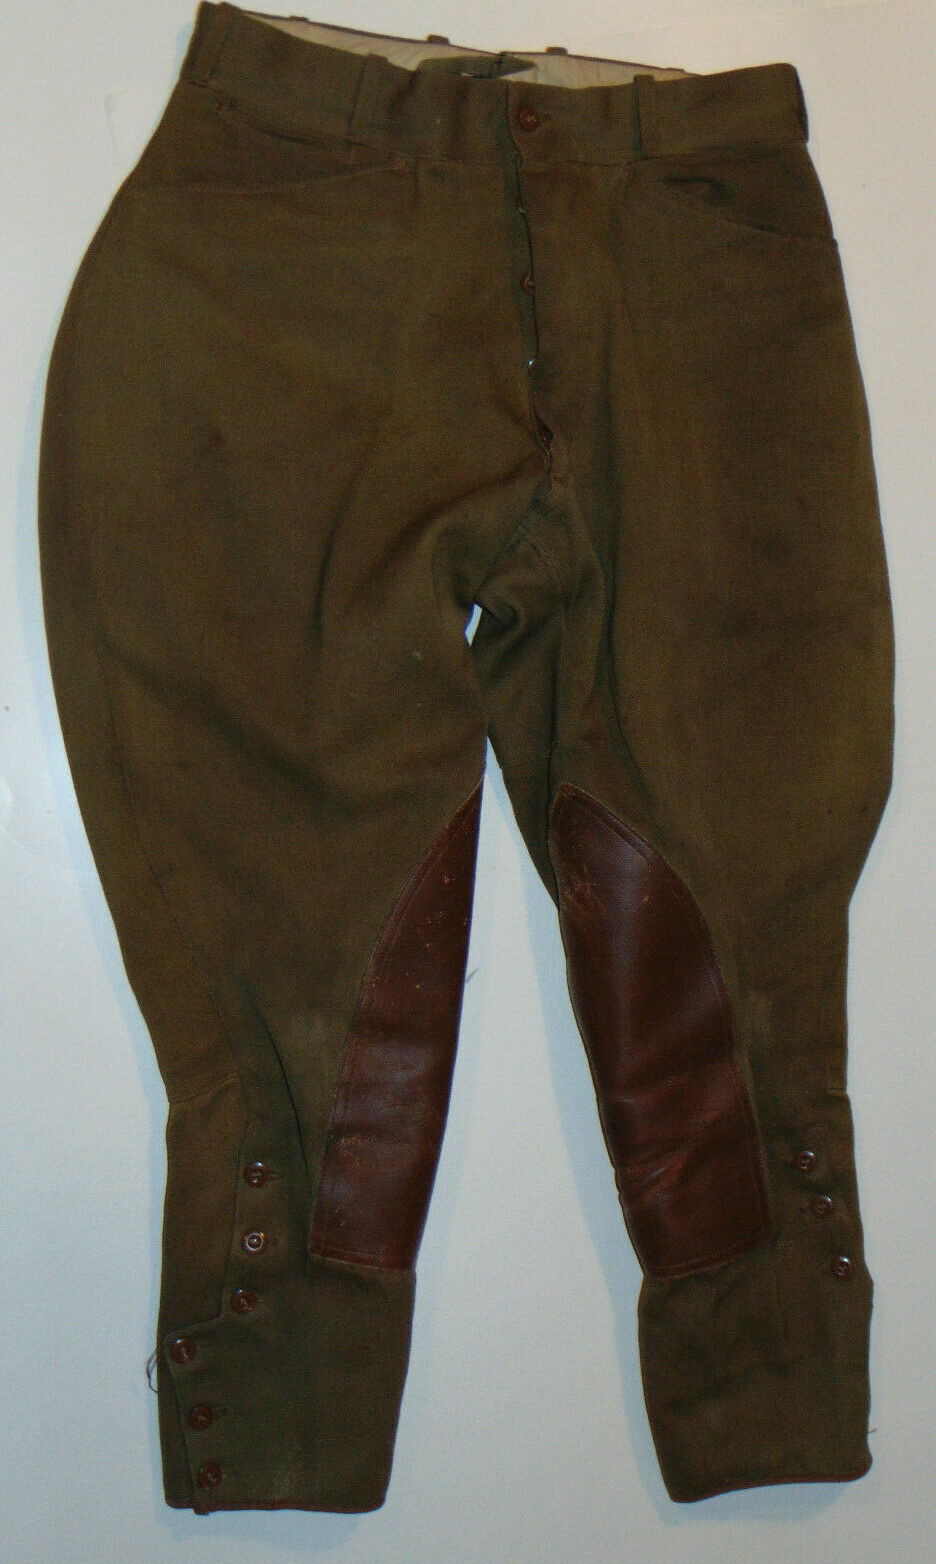 VTG 1910s20s equestre PANTS  LEATHER KNEE PATCHESBUTTON FLYPHILA  30 WAIST